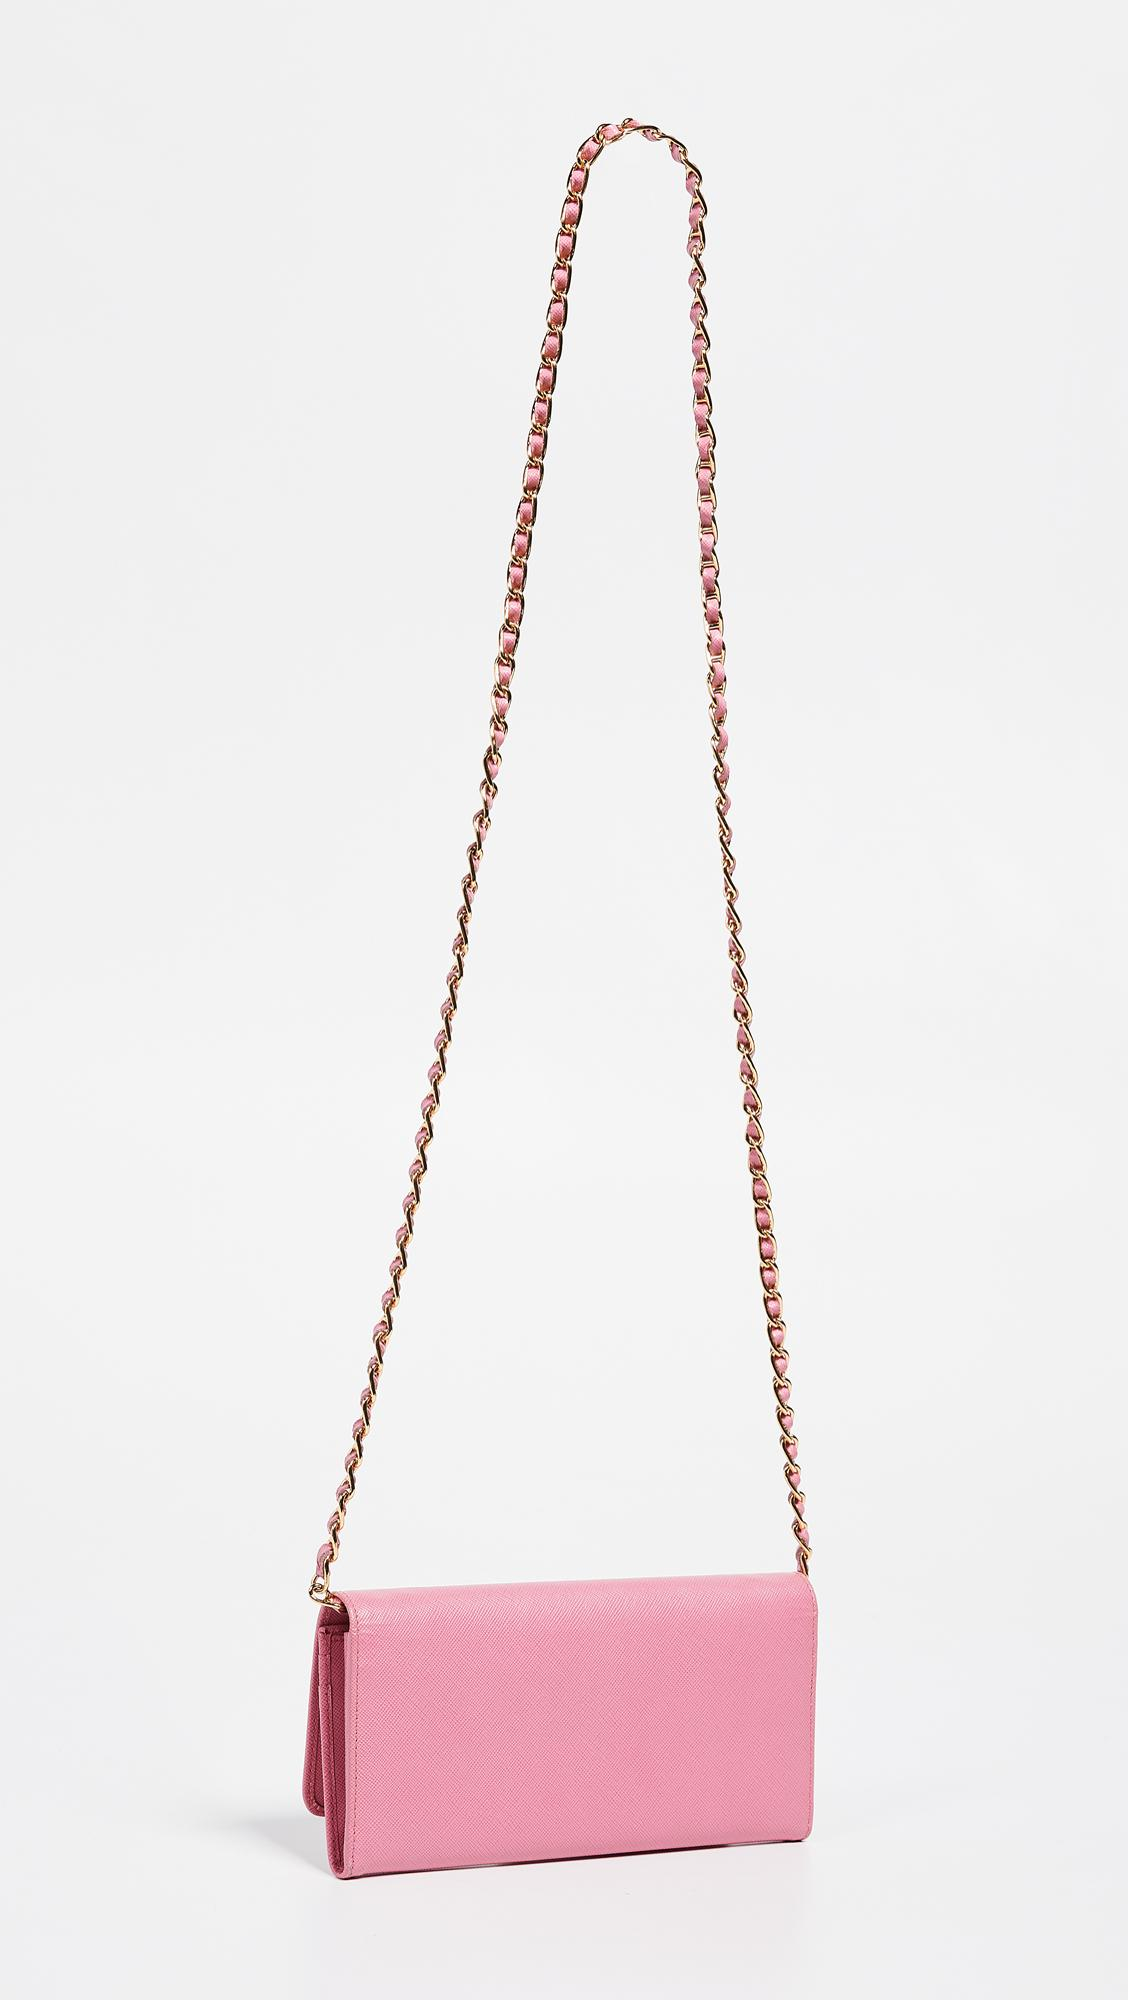 4d0772717359 Lyst - What Goes Around Comes Around Prada Saffiano Chain Wallet in Pink